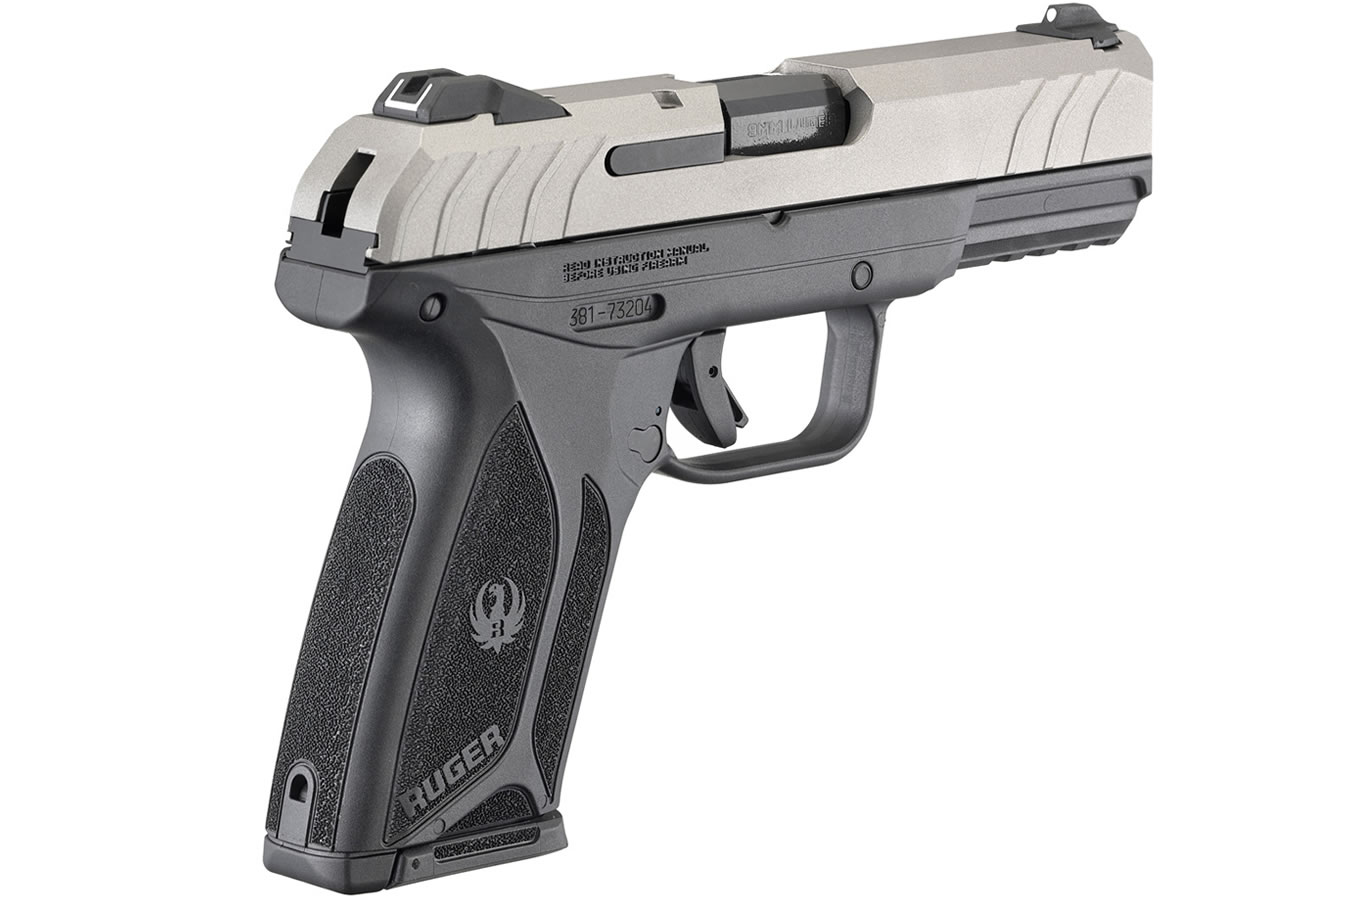 Security-9 9mm Pistol with Silver Cerakote Slide